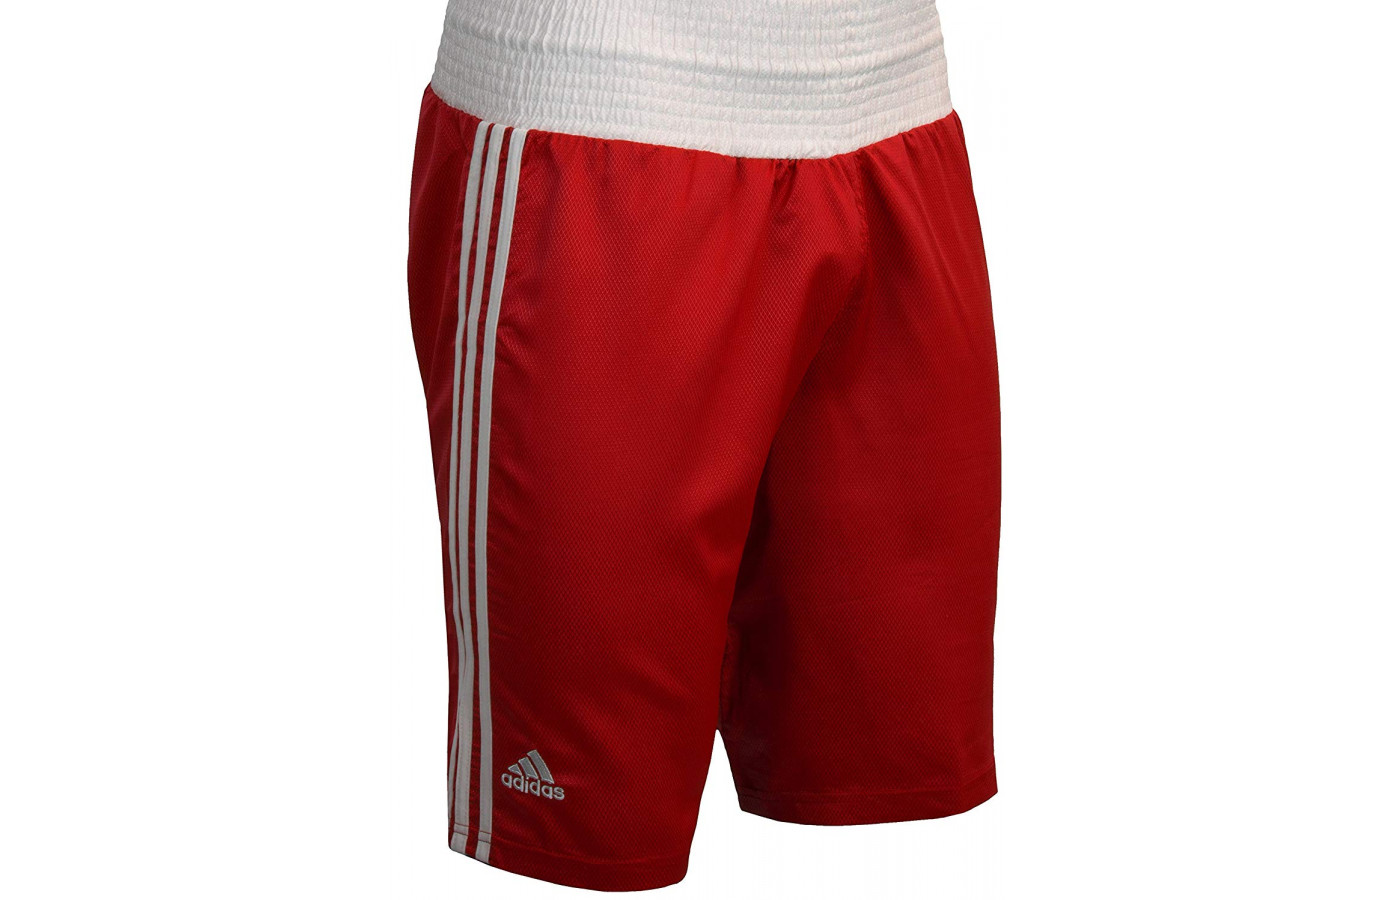 adidas boxing trunks red and white